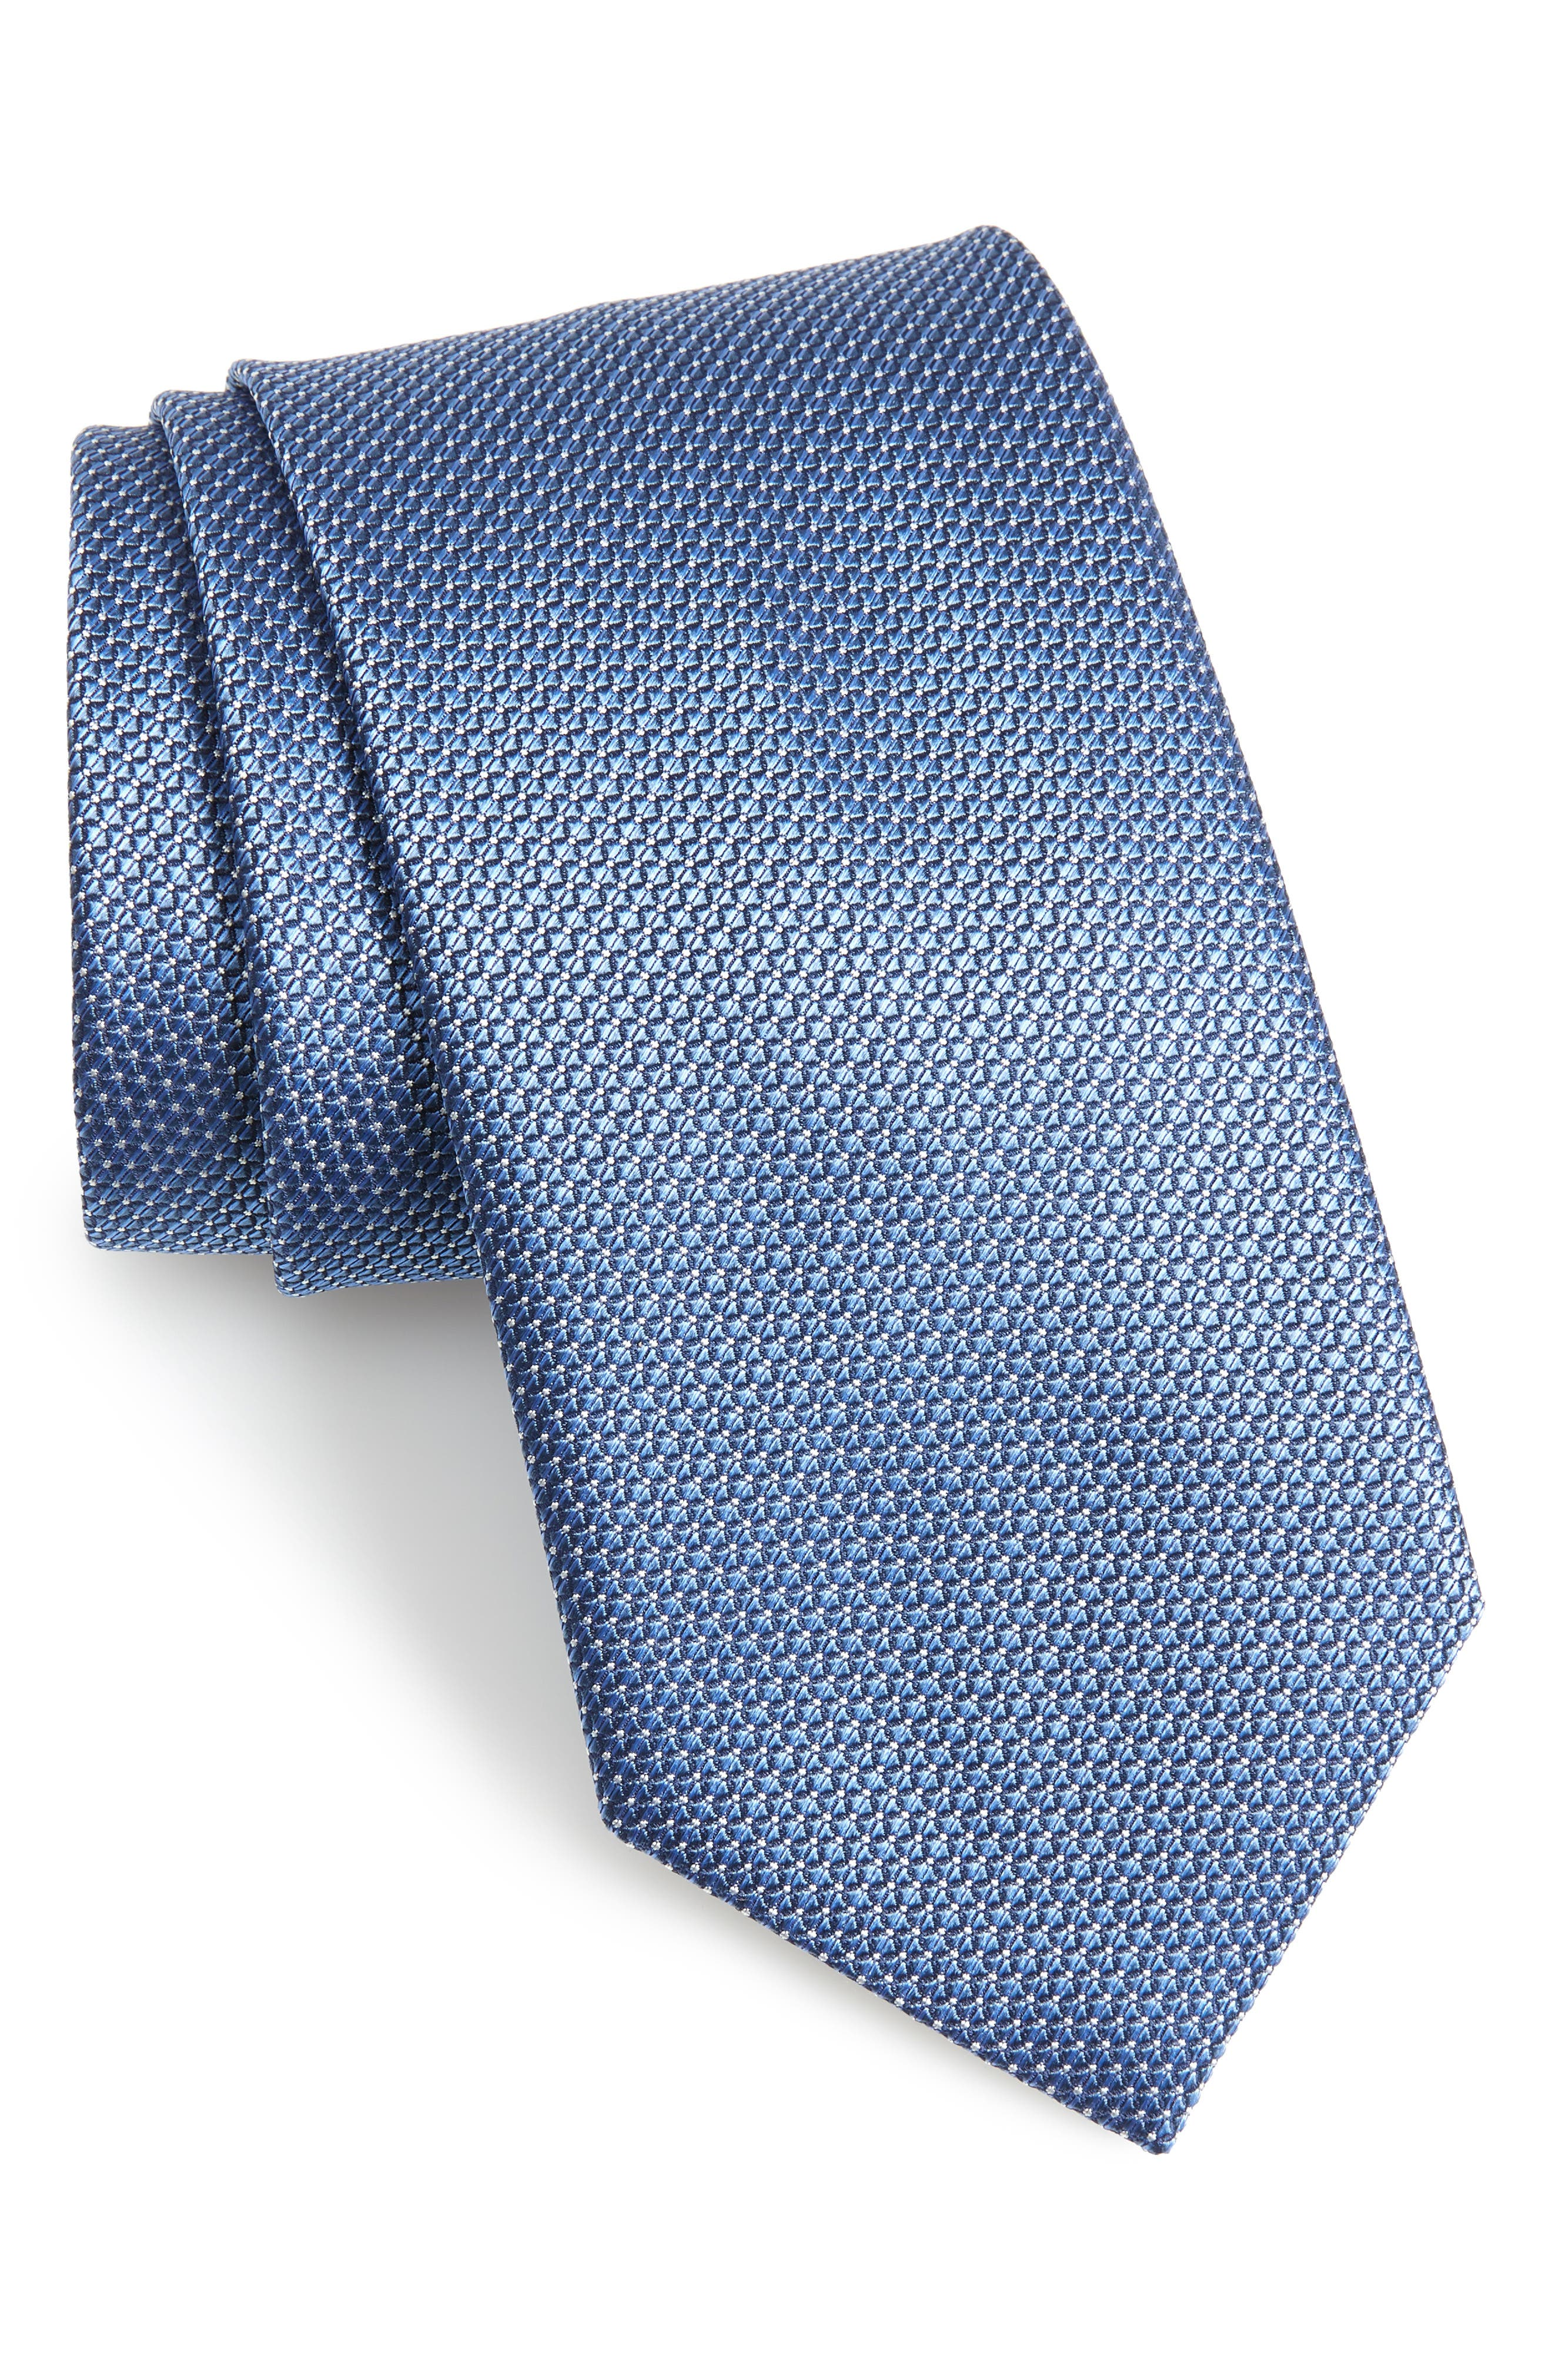 Geometric Silk Tie,                             Main thumbnail 1, color,                             490